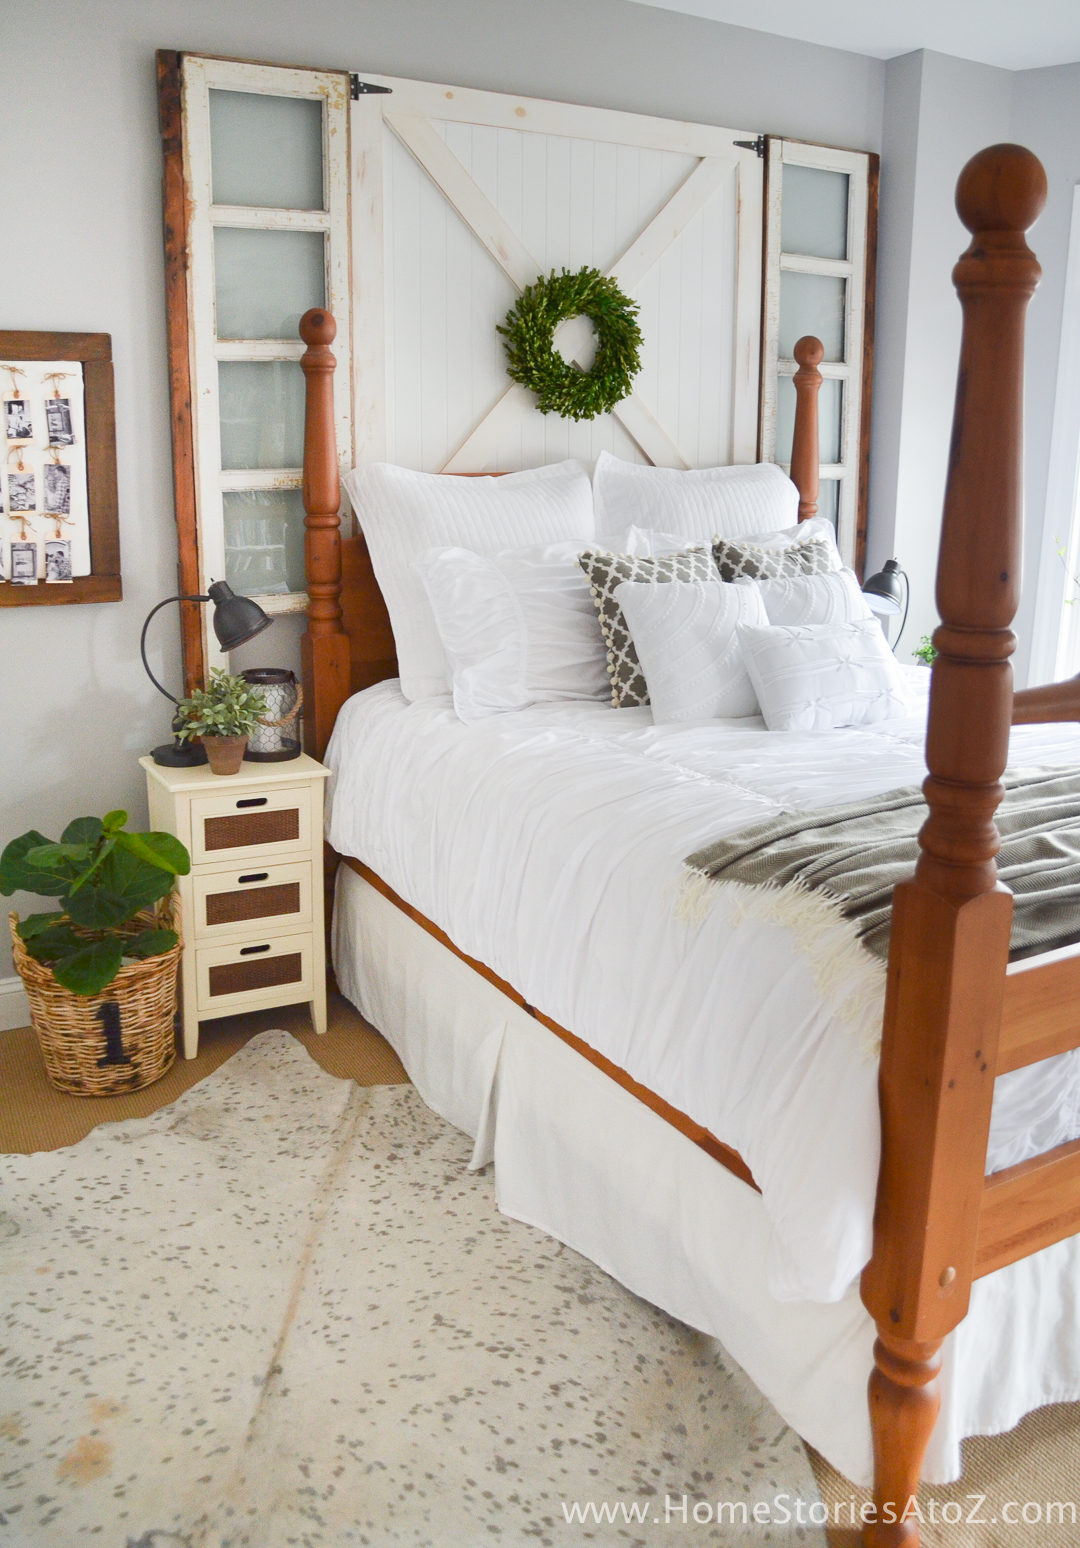 Do It Yourself Home Decorating Ideas: 5 Affordable Tips To Creating A Modern Farmhouse Look In